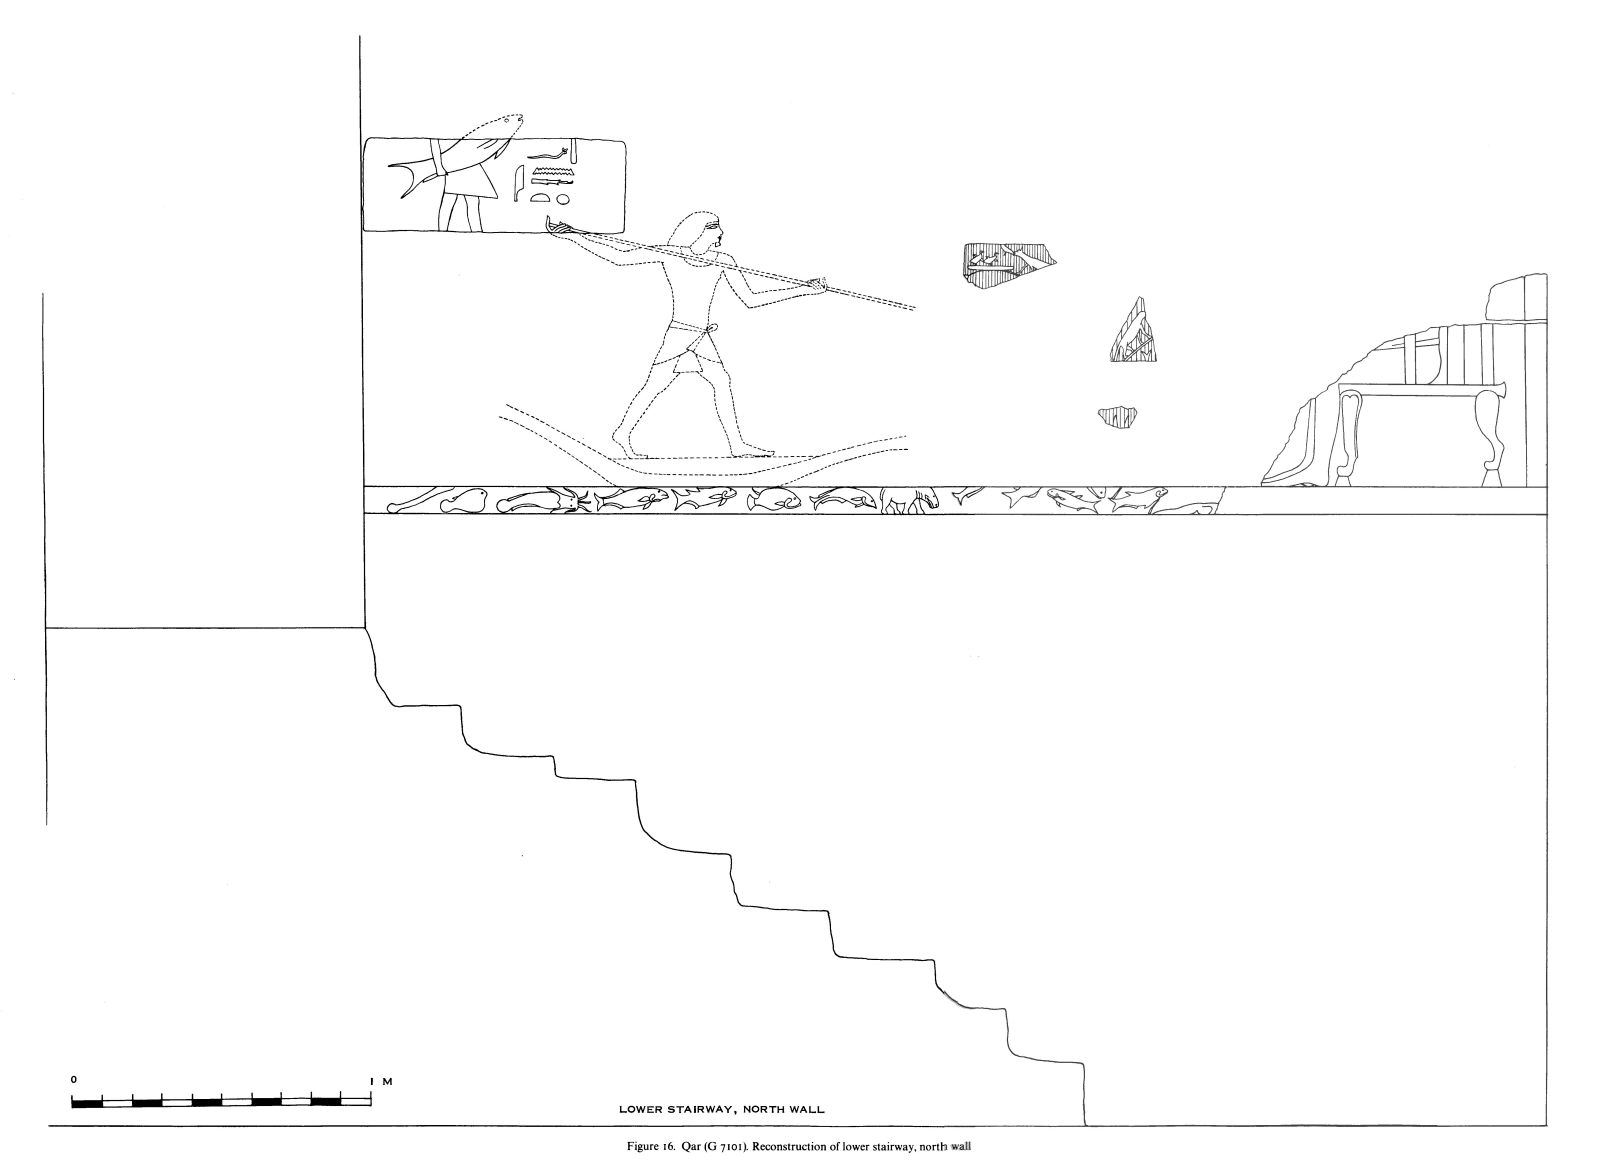 Drawings: G 7101, Elevation of lower stairway, N wall, reconstruction